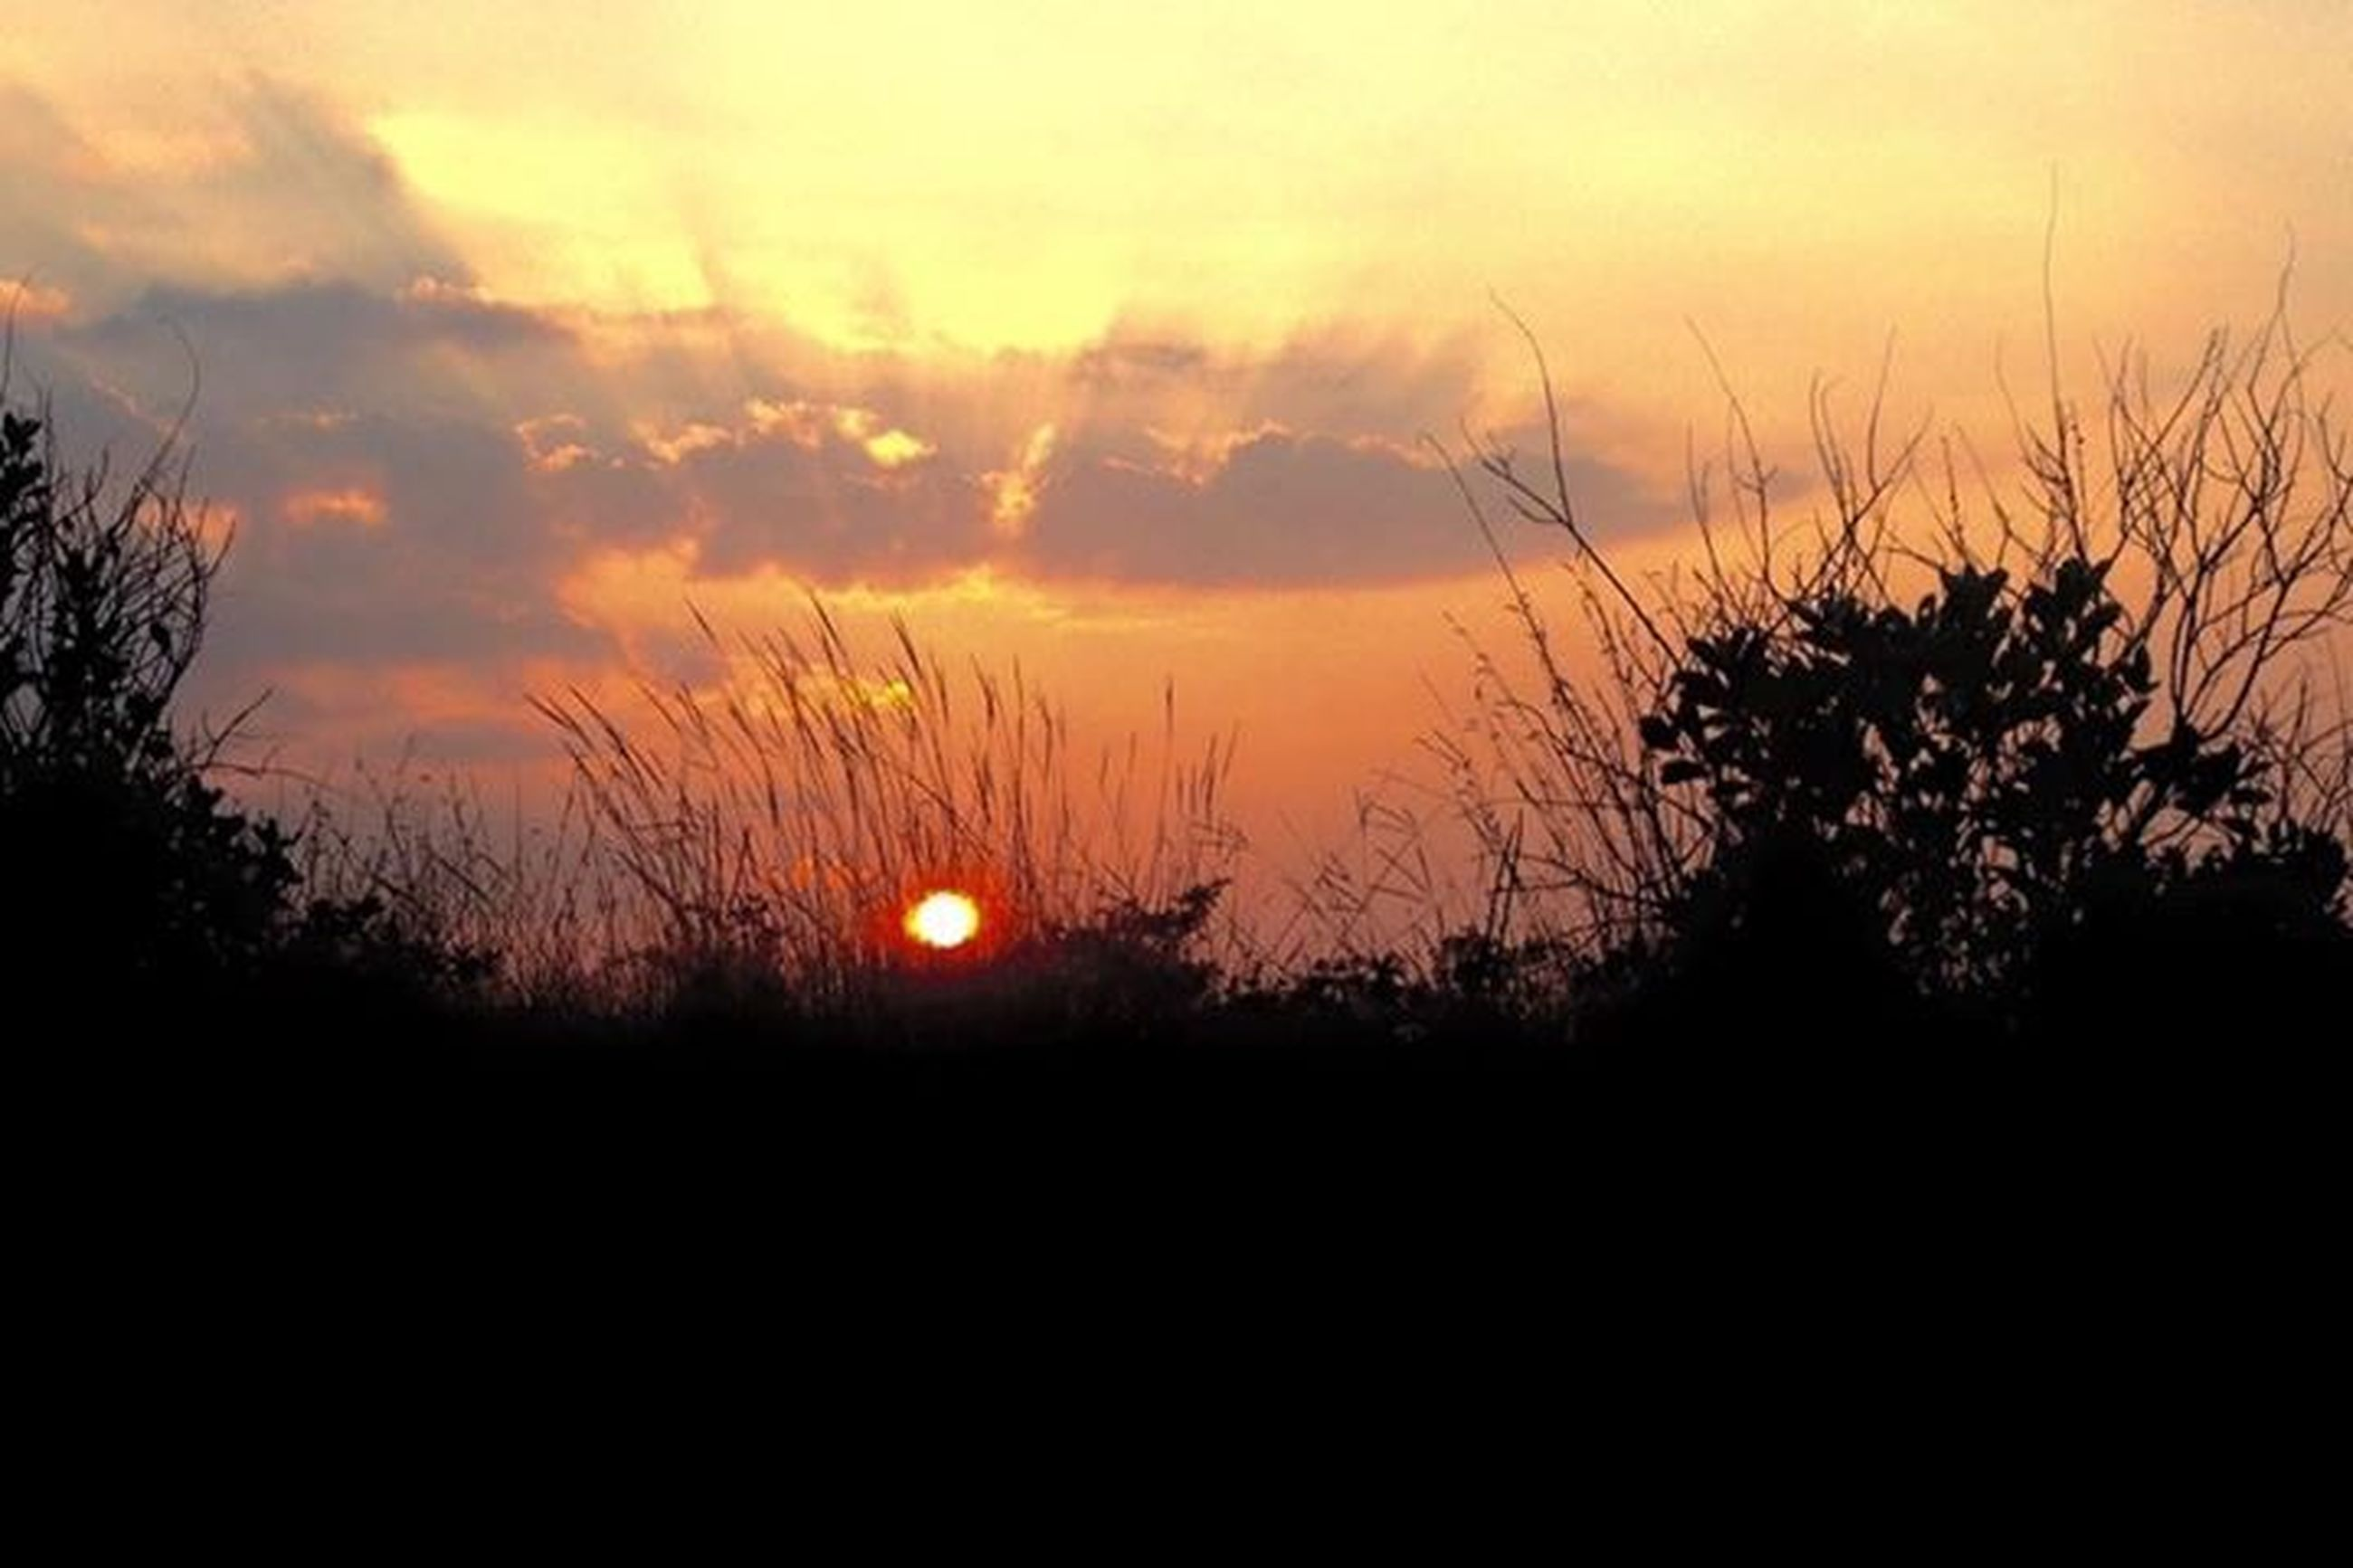 sunset, sun, silhouette, scenics, orange color, tranquil scene, beauty in nature, tranquility, sky, nature, idyllic, landscape, tree, cloud - sky, field, growth, outdoors, no people, majestic, cloud